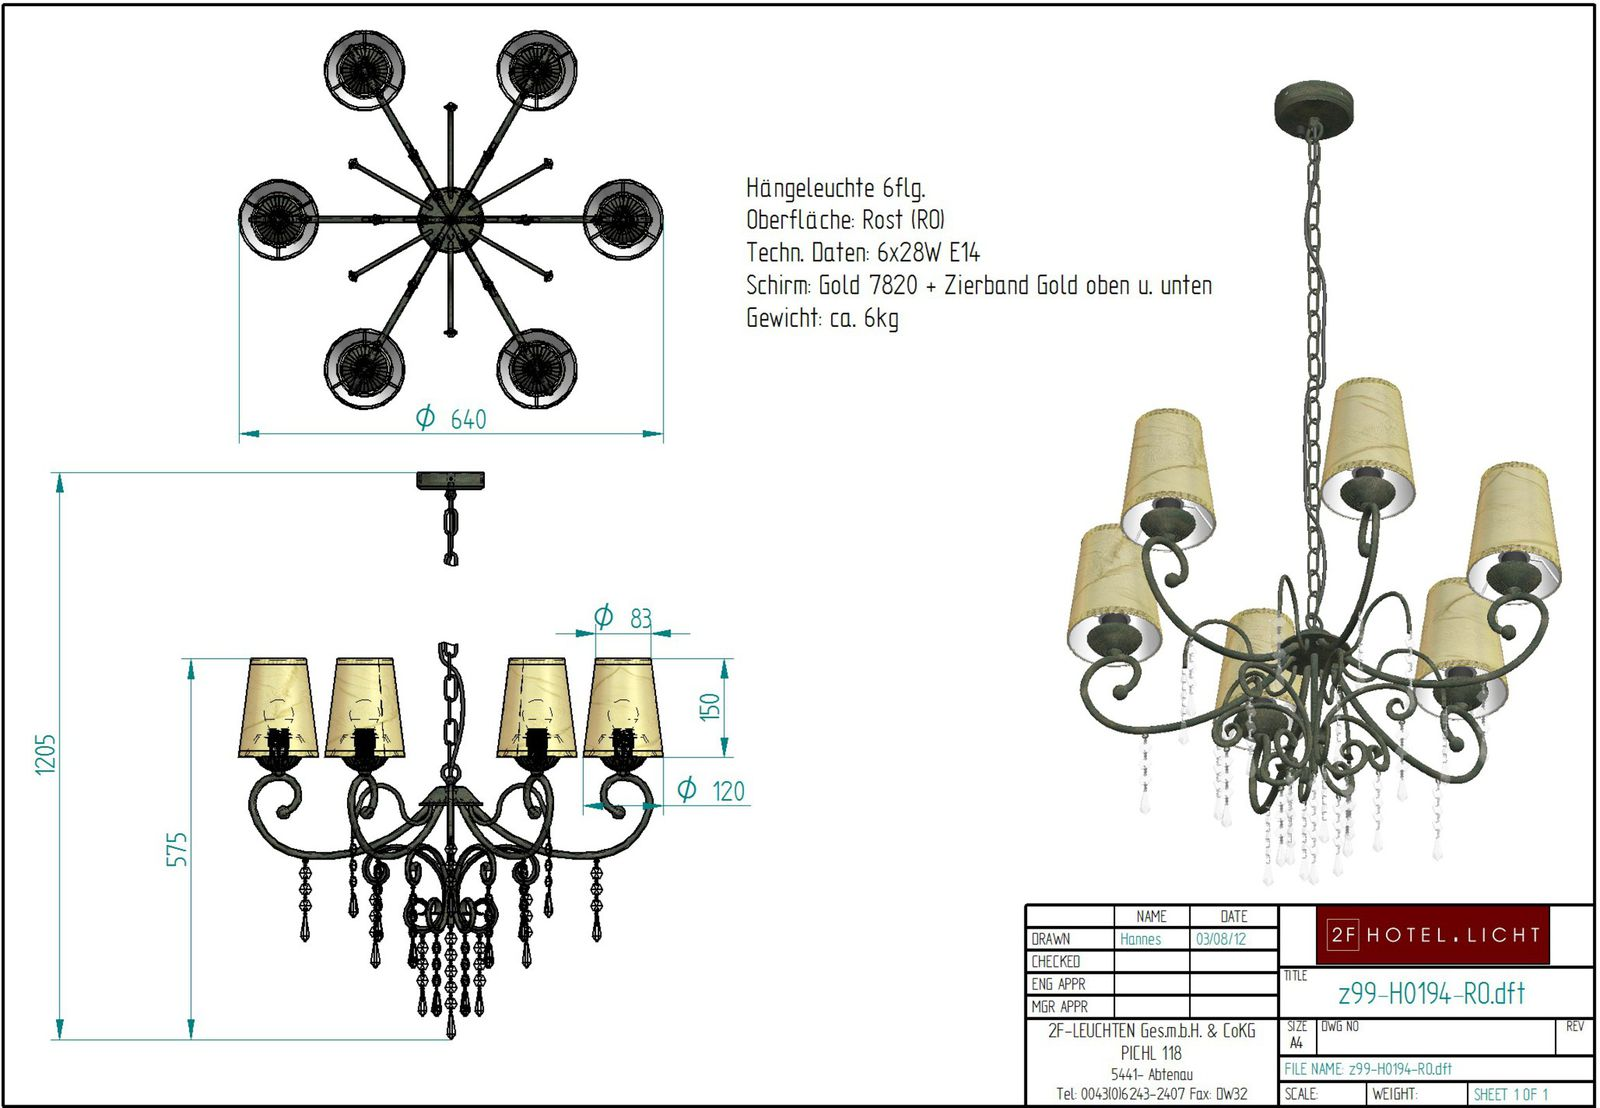 Hanging lamp 6flg. measure: length diameter=640mm, height=1200mm, surface: softblack, techn. details: 6xE14, 6x28W